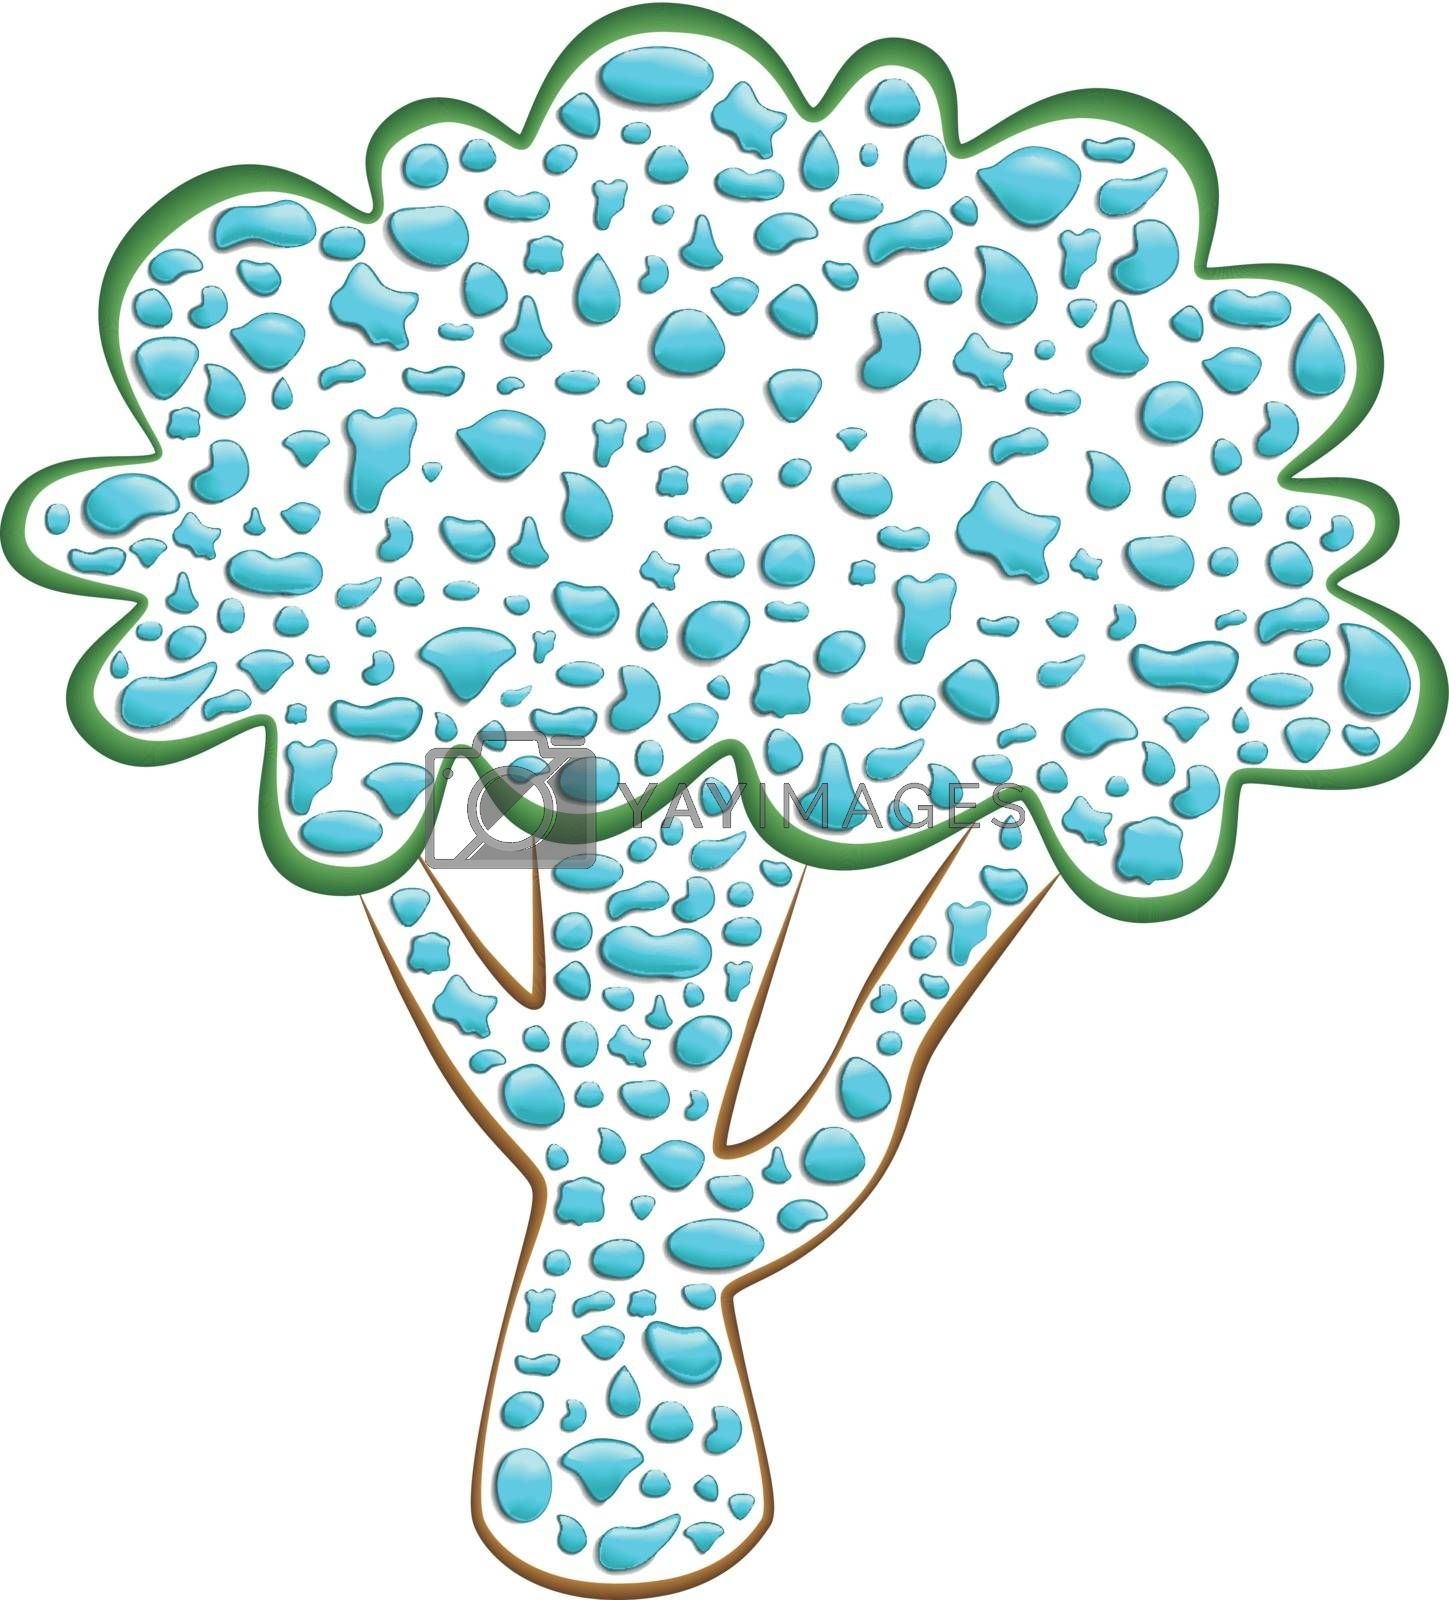 illustration of a tree with water droplets created